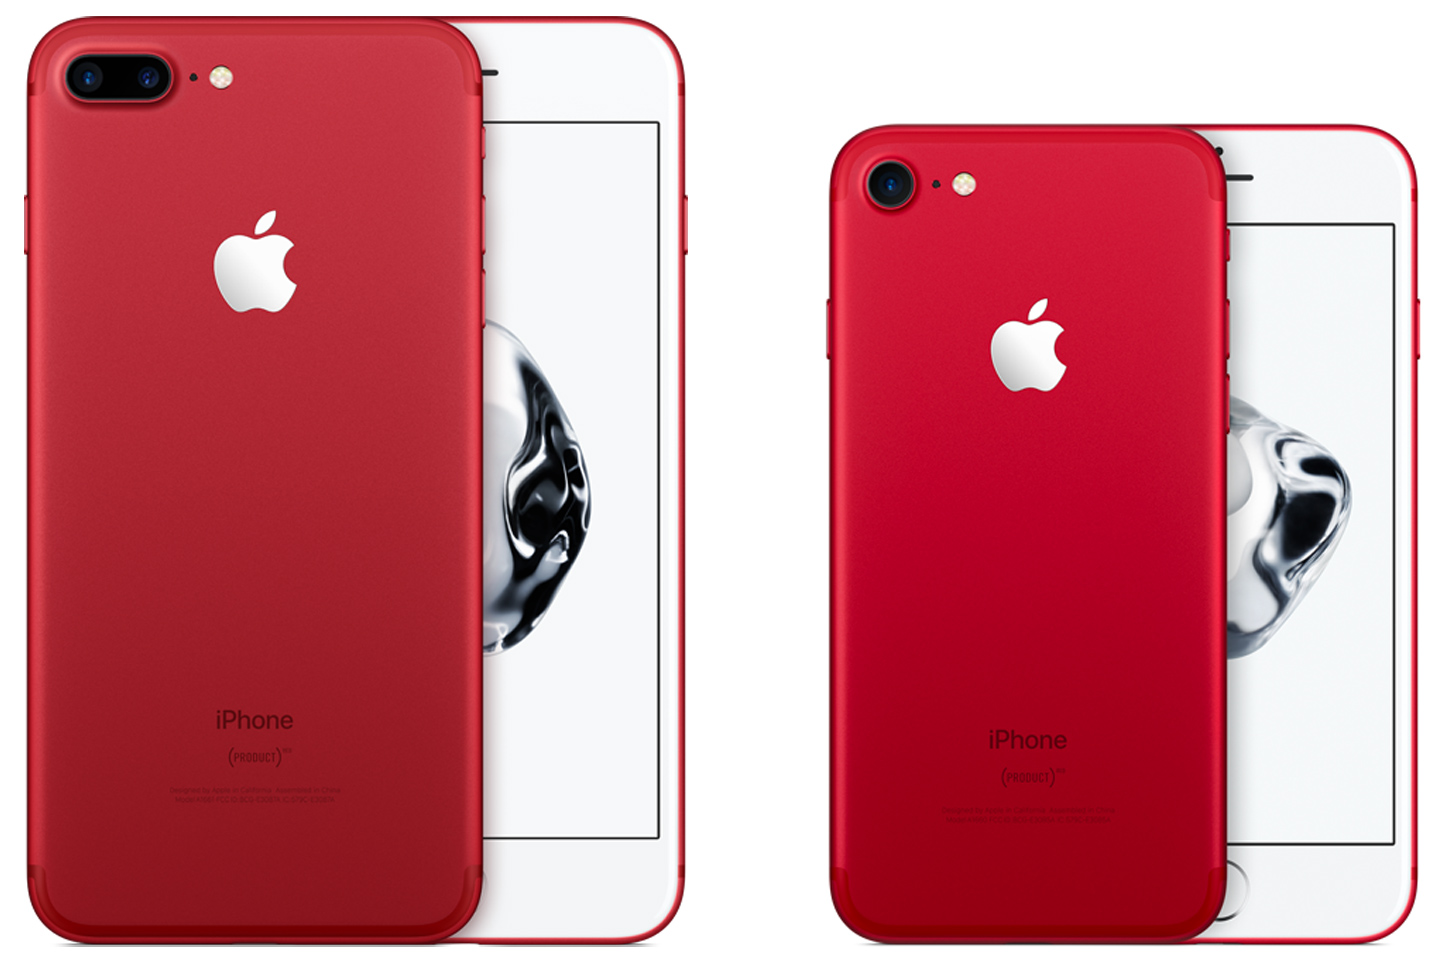 iphone red. iphone red a